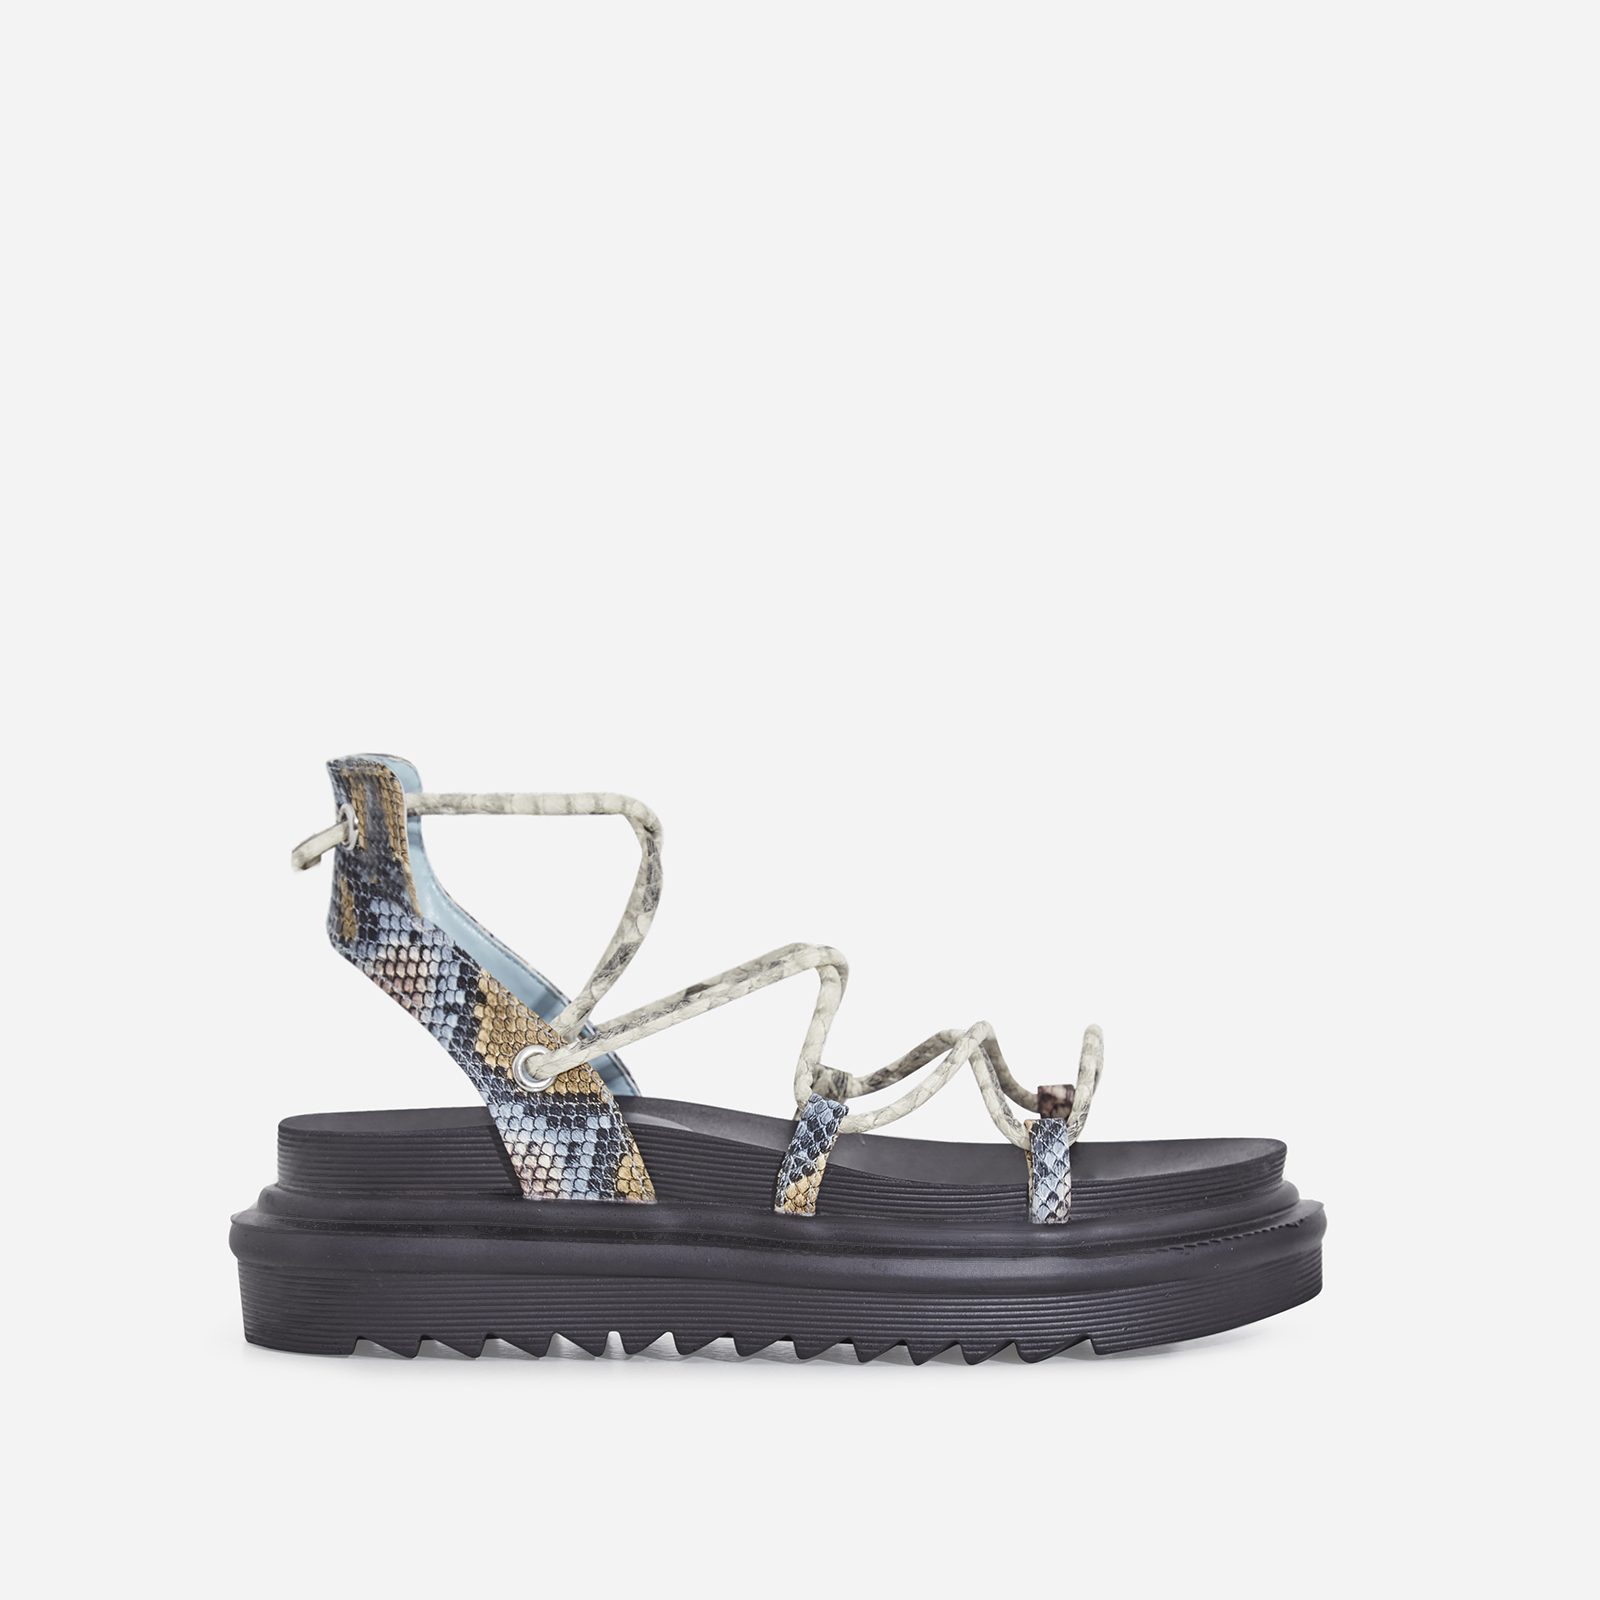 Harper Lace Up Chunky Sole Sandal In Blue Snake Print Faux Leather